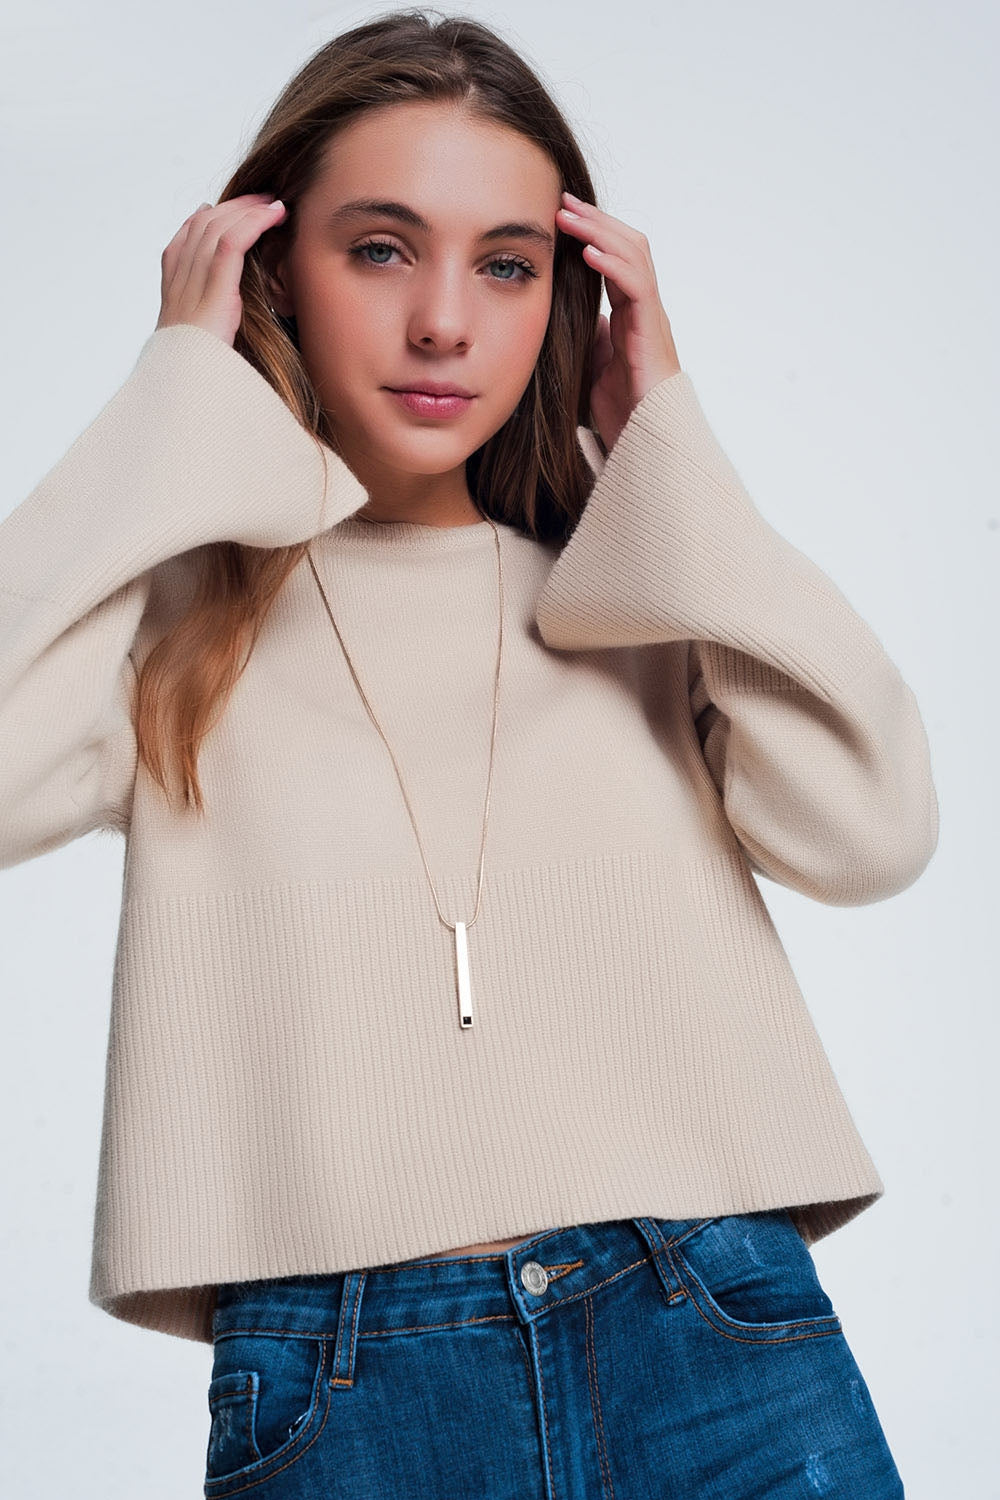 Beige Sweater With Long Sleeves-Women - Apparel - Sweaters - Pull Over-Product Details Beige sweater made of soft fabric with long sleeves and striped detail at the bottom of the sweater-Keyomi-Sook